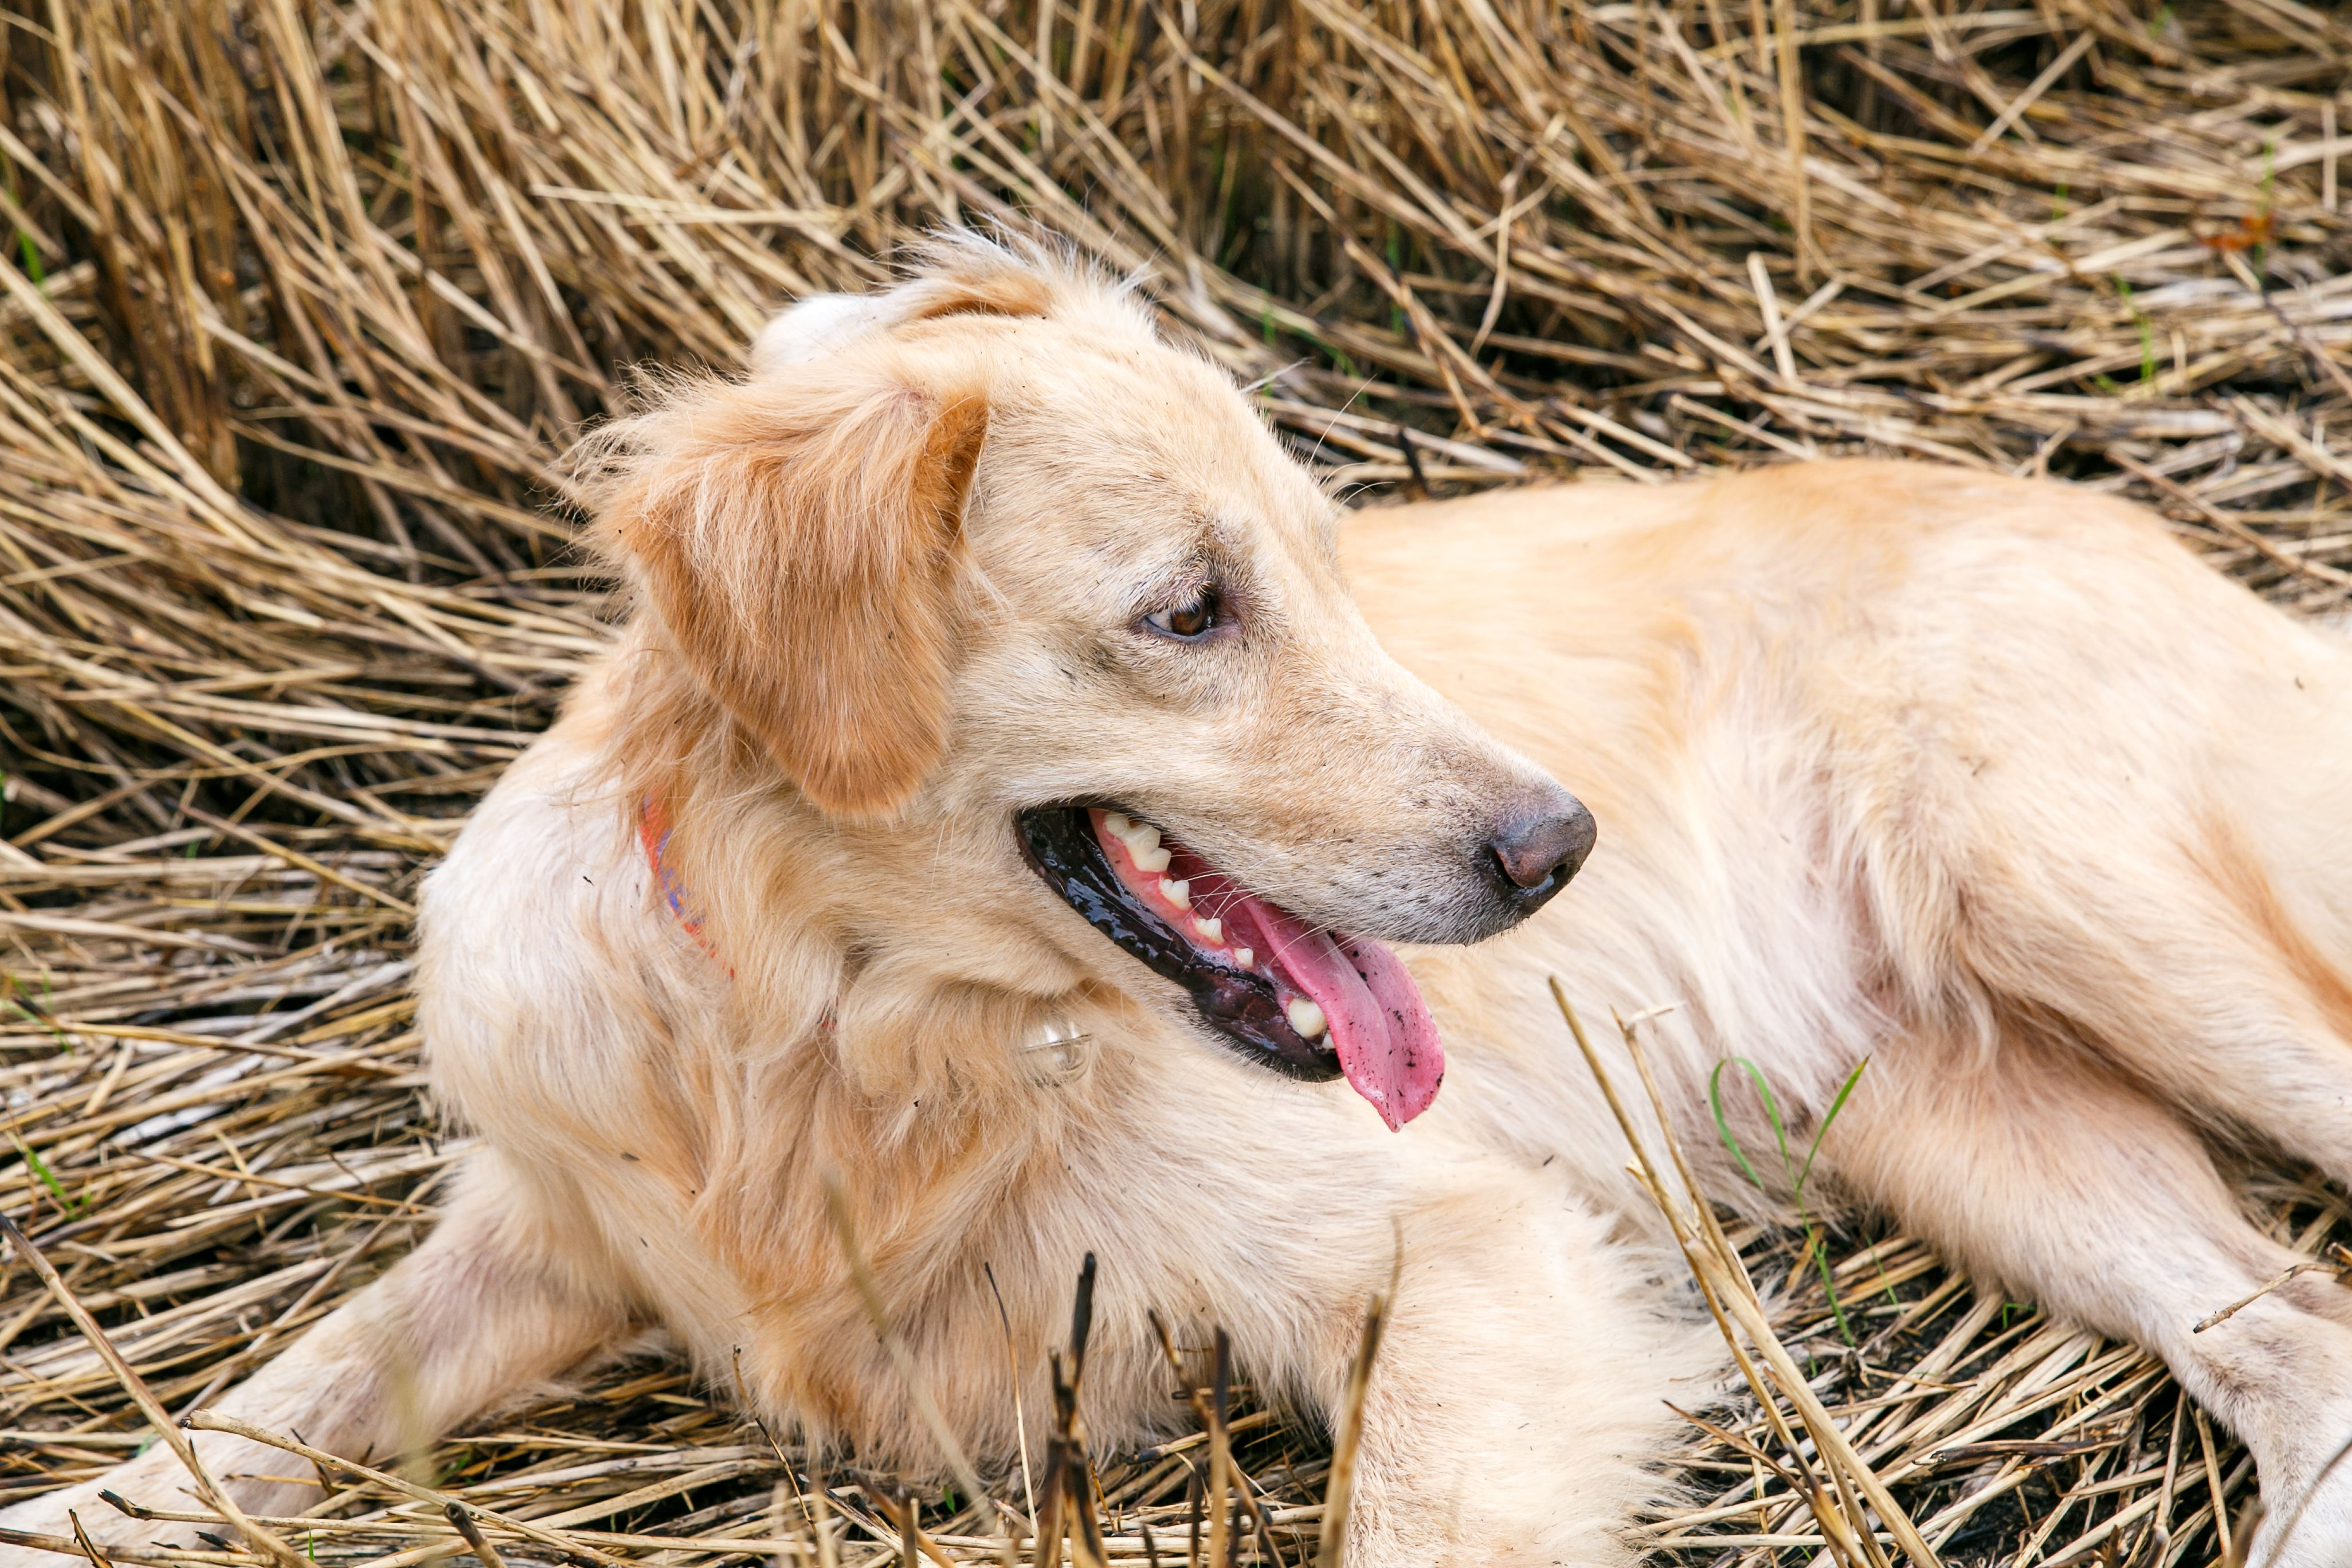 Emotion Young Female Golden Retriever Lay Down At Old Rice Straw After Play Puppy Dog Female Golden Retriever Golden Retriever Puppies